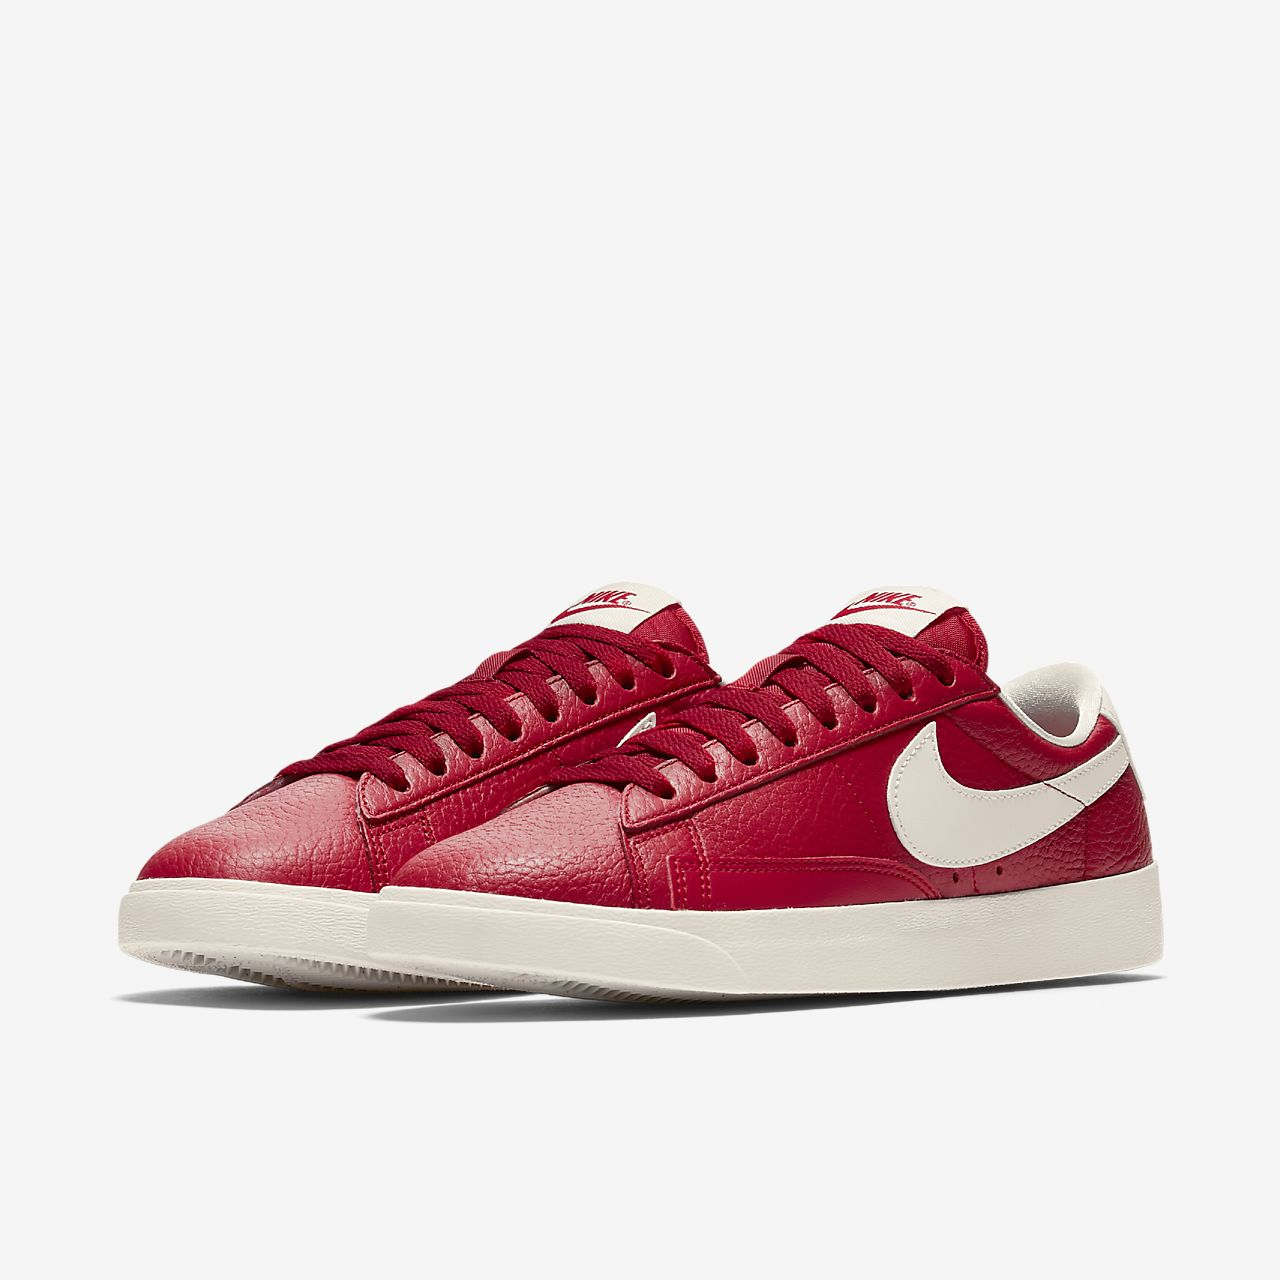 Nike Blazer Premium Low Womens Shoe